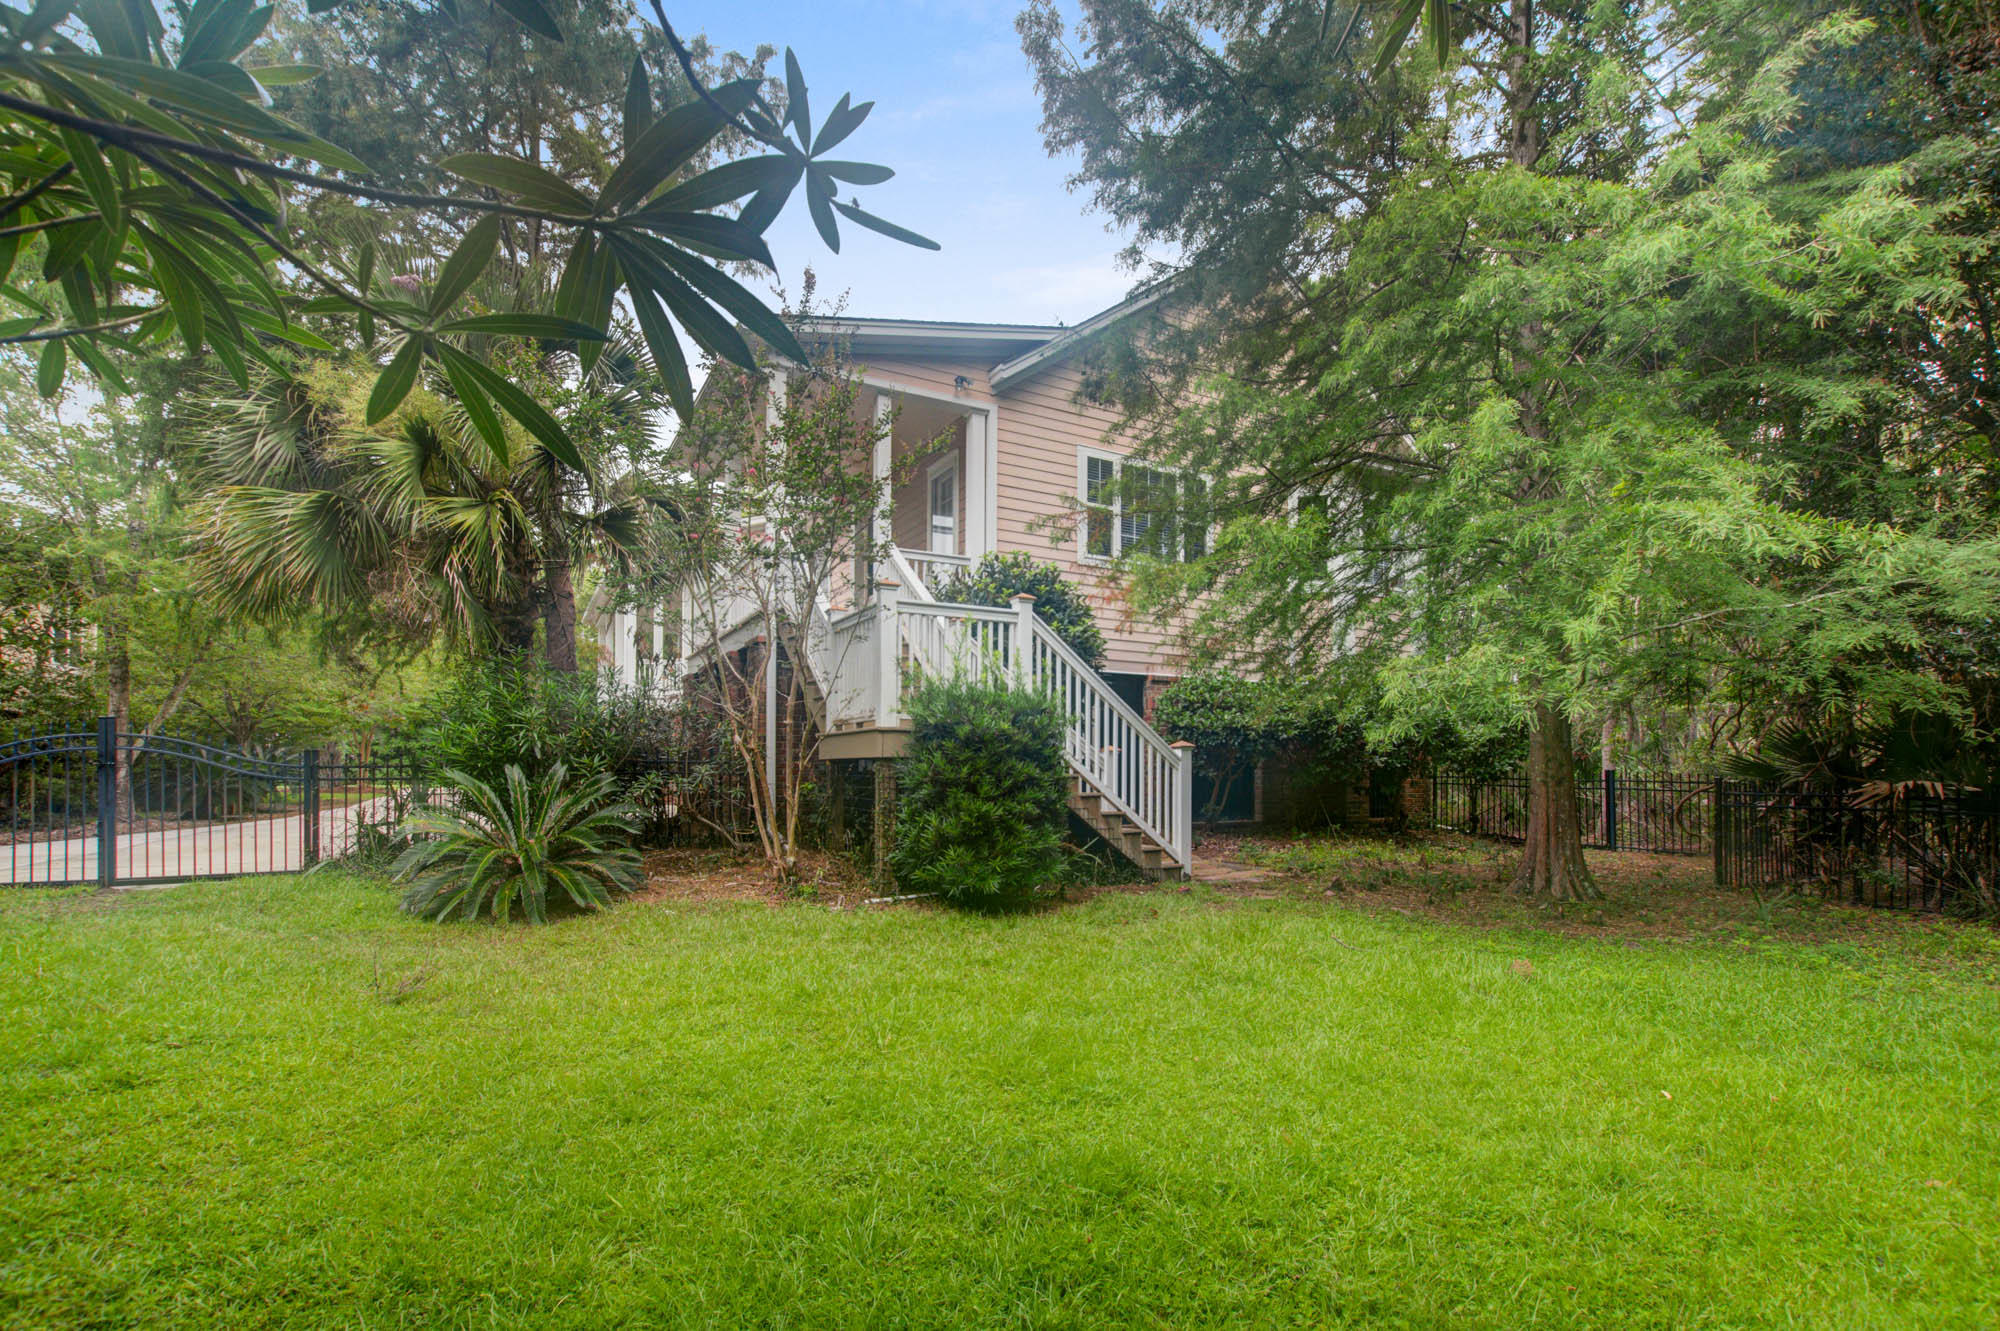 Rivertowne Country Club Homes For Sale - 1741 Rivertowne Country Club, Mount Pleasant, SC - 3